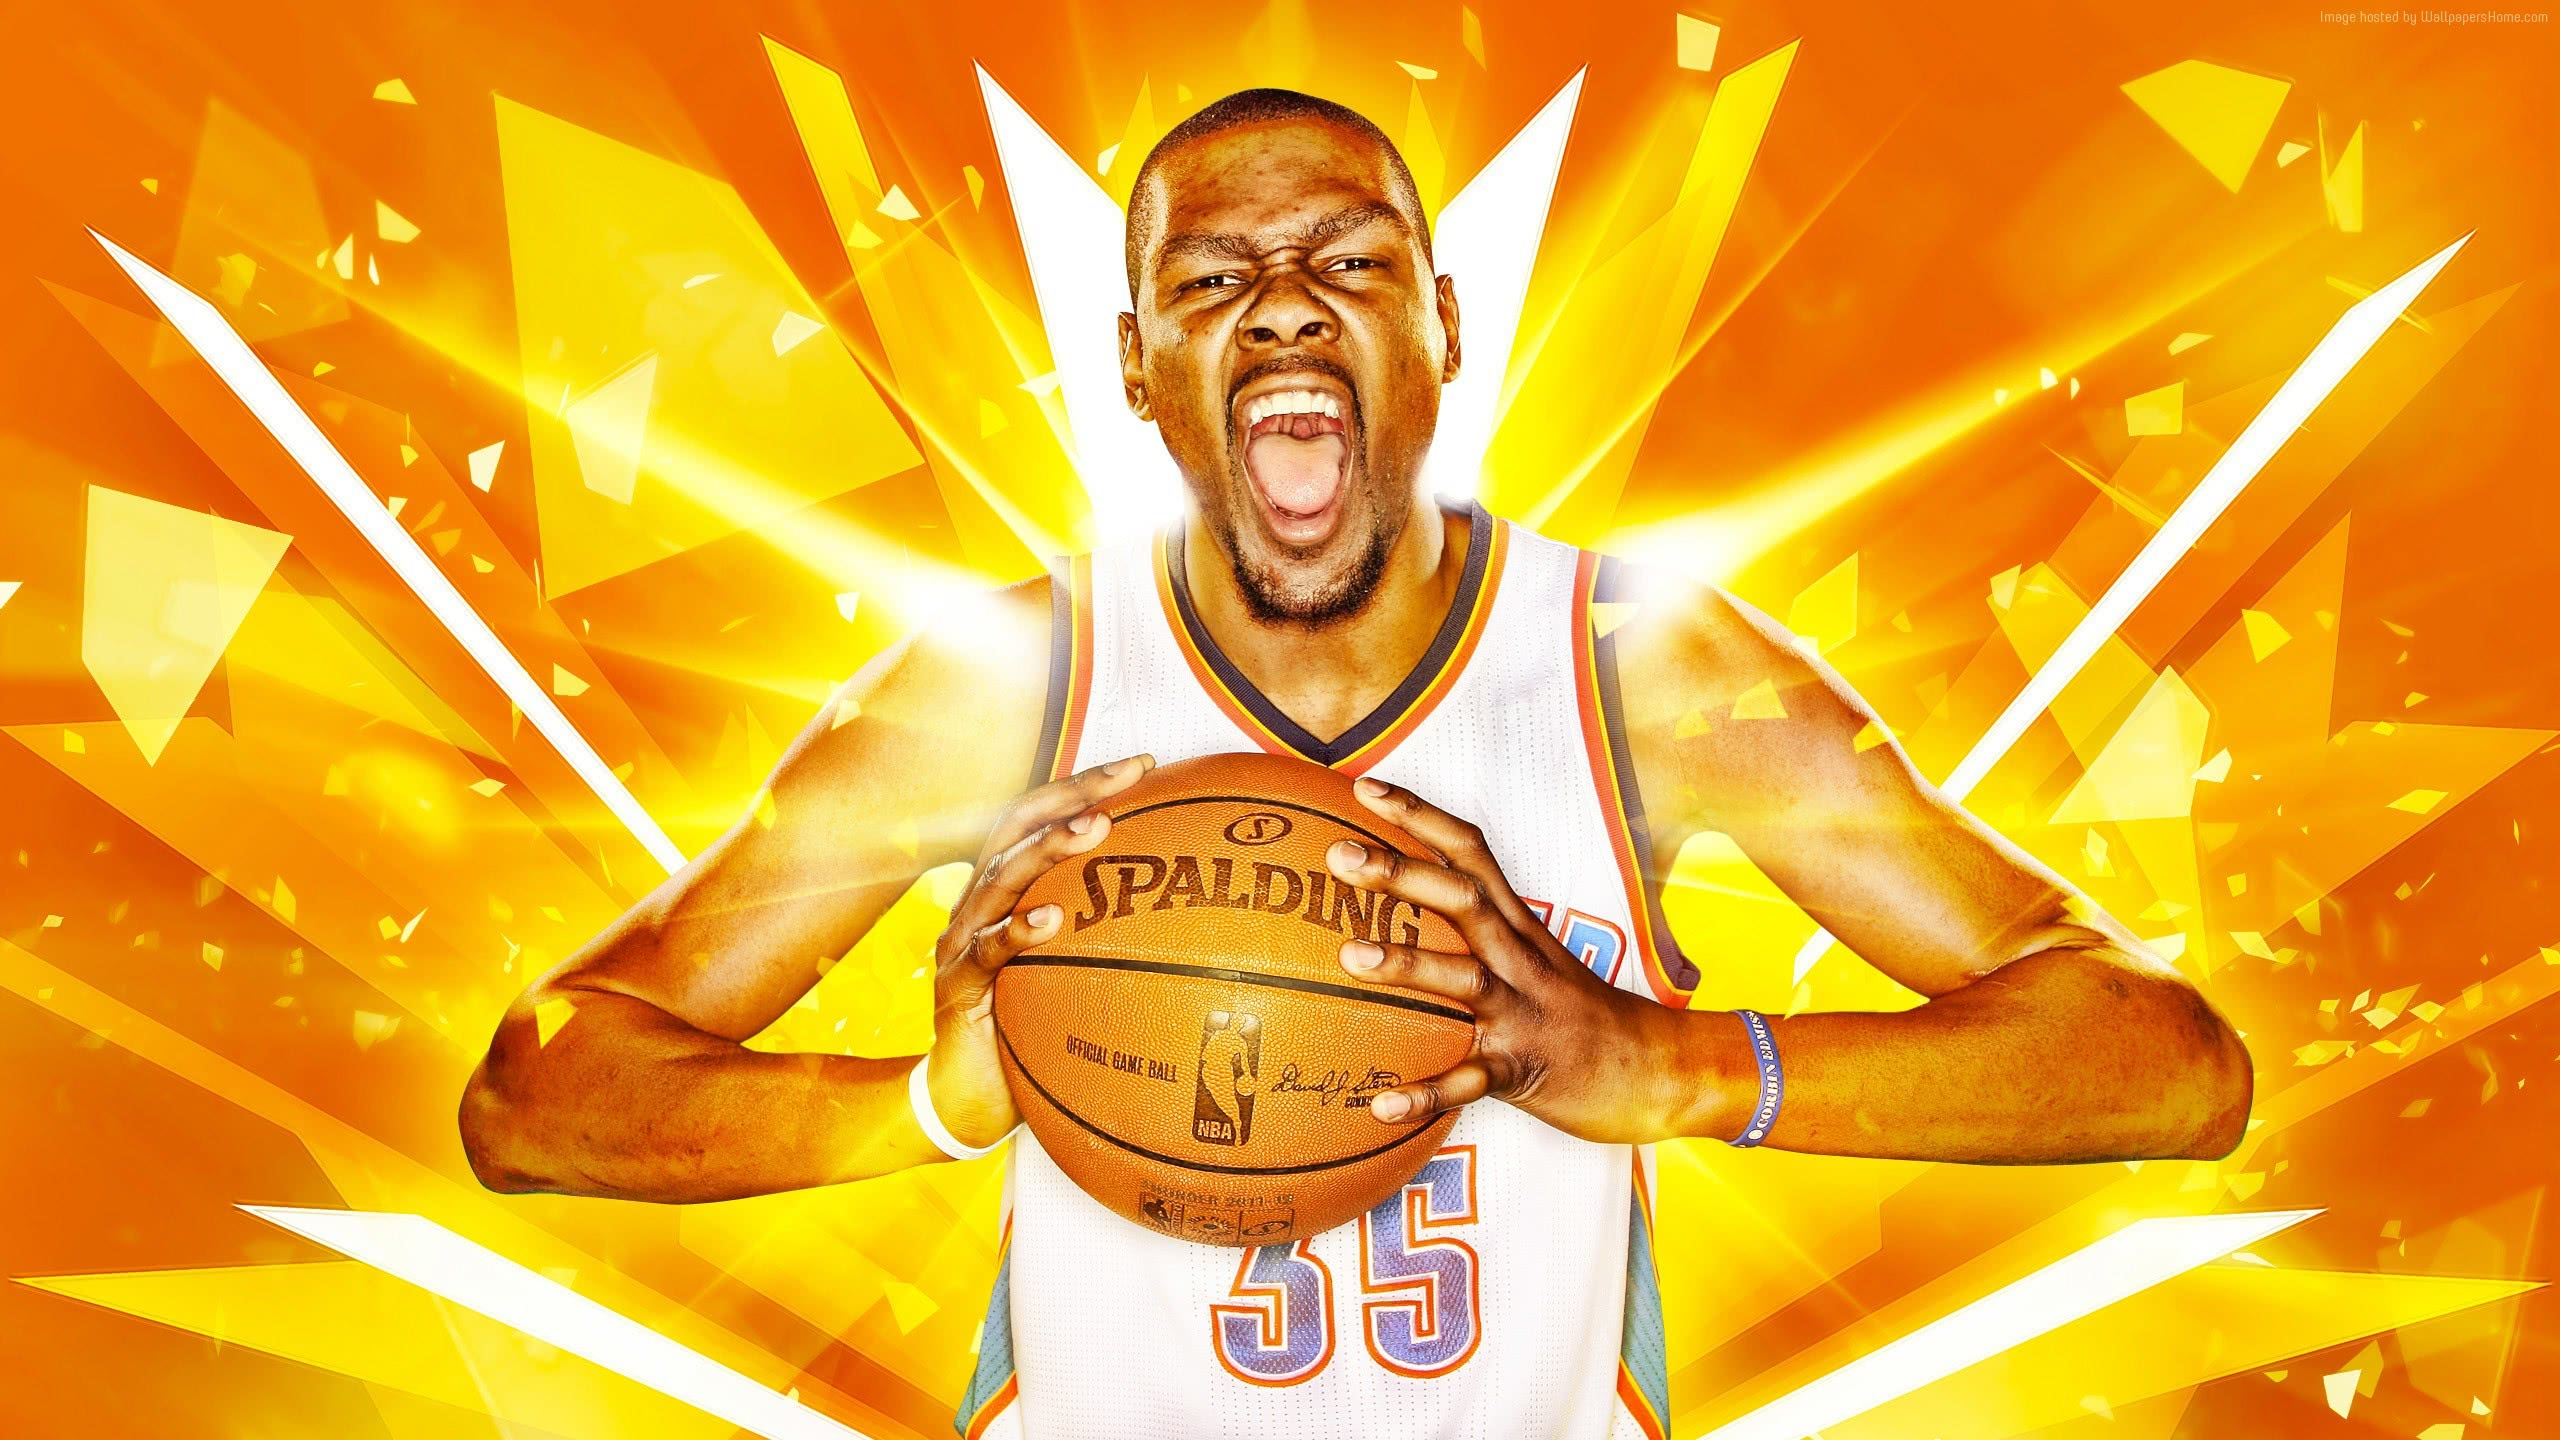 Kevin Durant Golden State Warriors Basketball Nba Wqhd - Kevin Durant Backgrounds , HD Wallpaper & Backgrounds